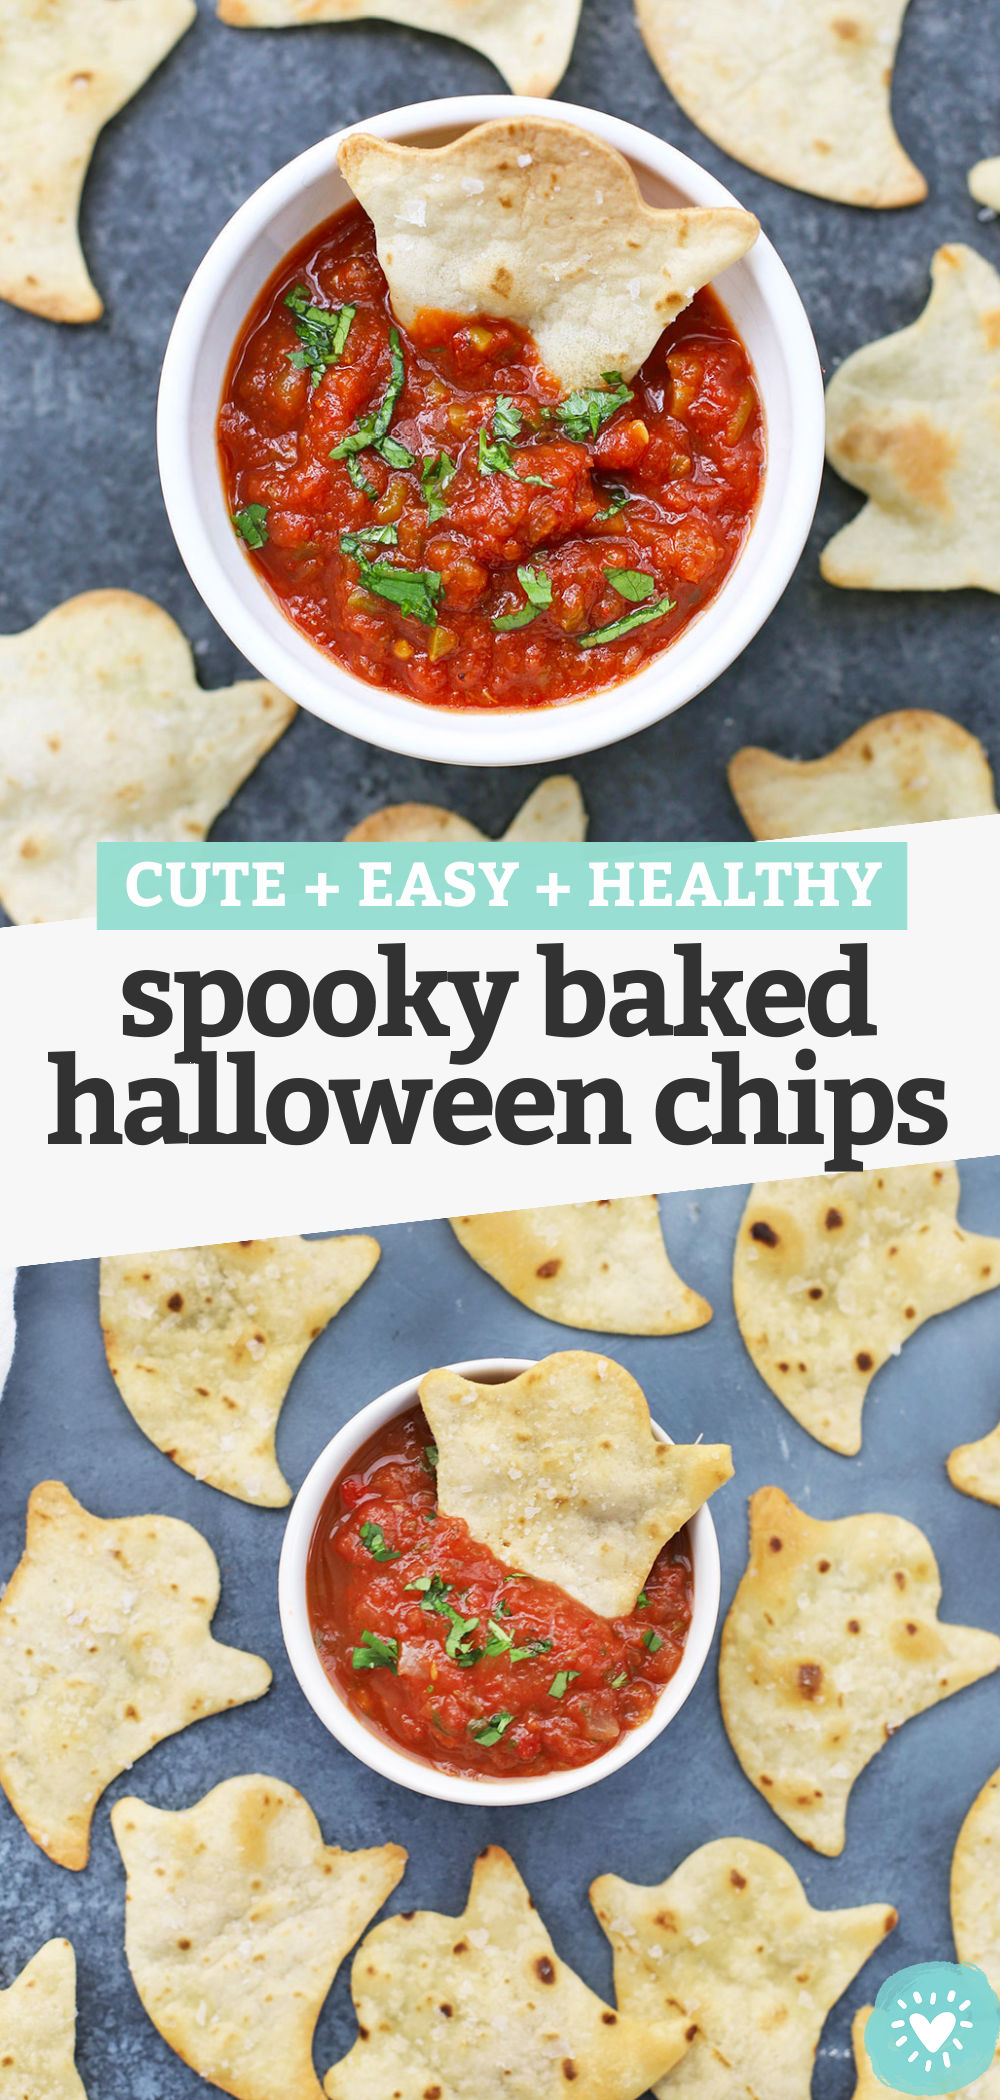 Spooky Baked Ghost Chips - You only need 15 minutes and 3 ingredients to make these adorable Halloween chips. The perfect spooky Halloween snack! Don't miss our favorite dips below! (Gluten-Free, Paleo-Friendly, Vegan-Friendly) // Halloween Snacks for Kids // Healthy Halloween Snack // Baked Ghost Chips // Halloween Chips #snack #halloween #fallrecipe #kidssnack #partyfood